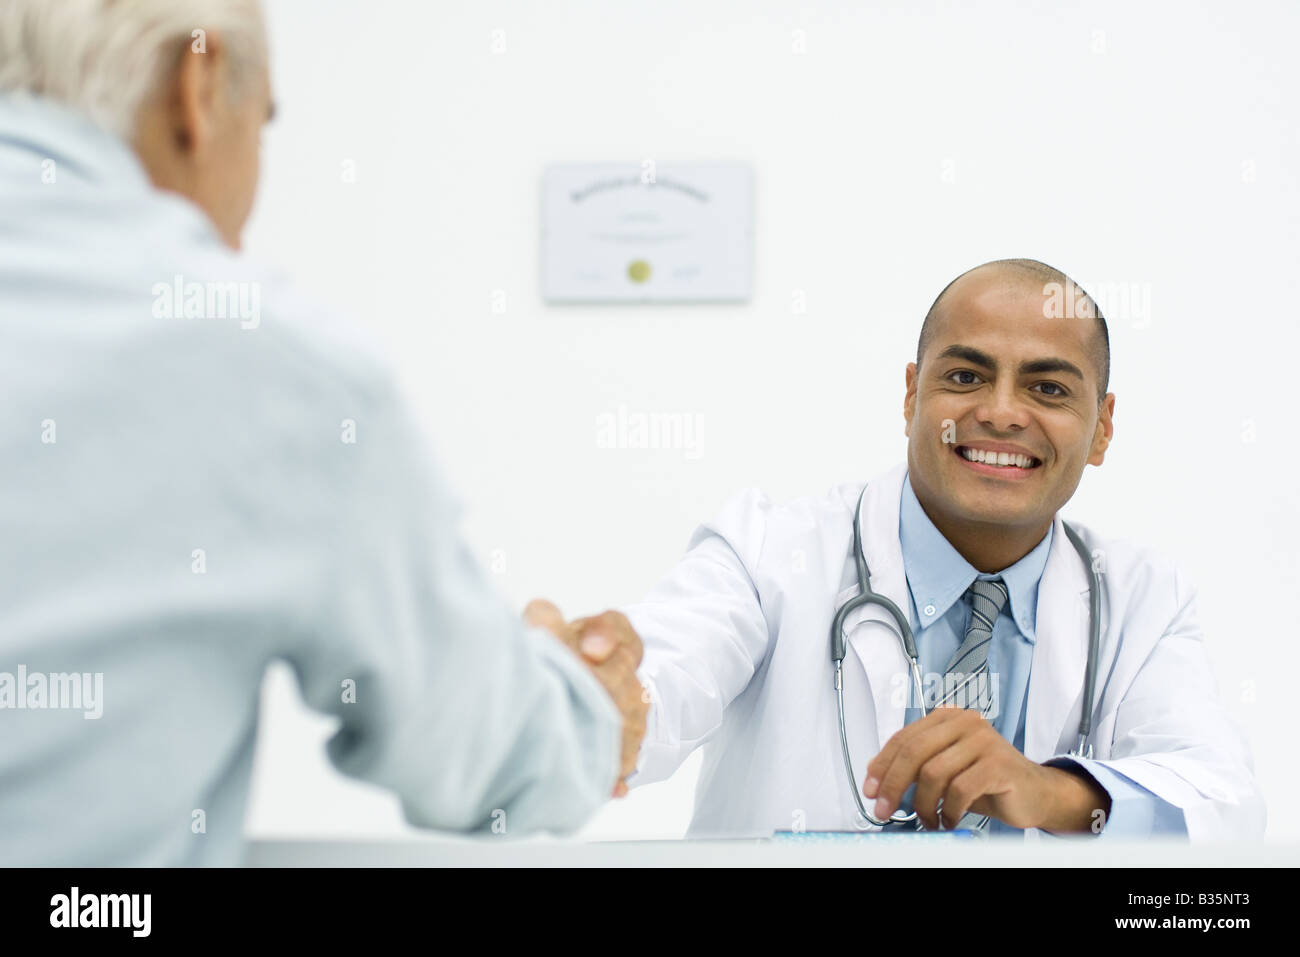 Doctor shaking hands with patient, smiling at camera, cropped - Stock Image